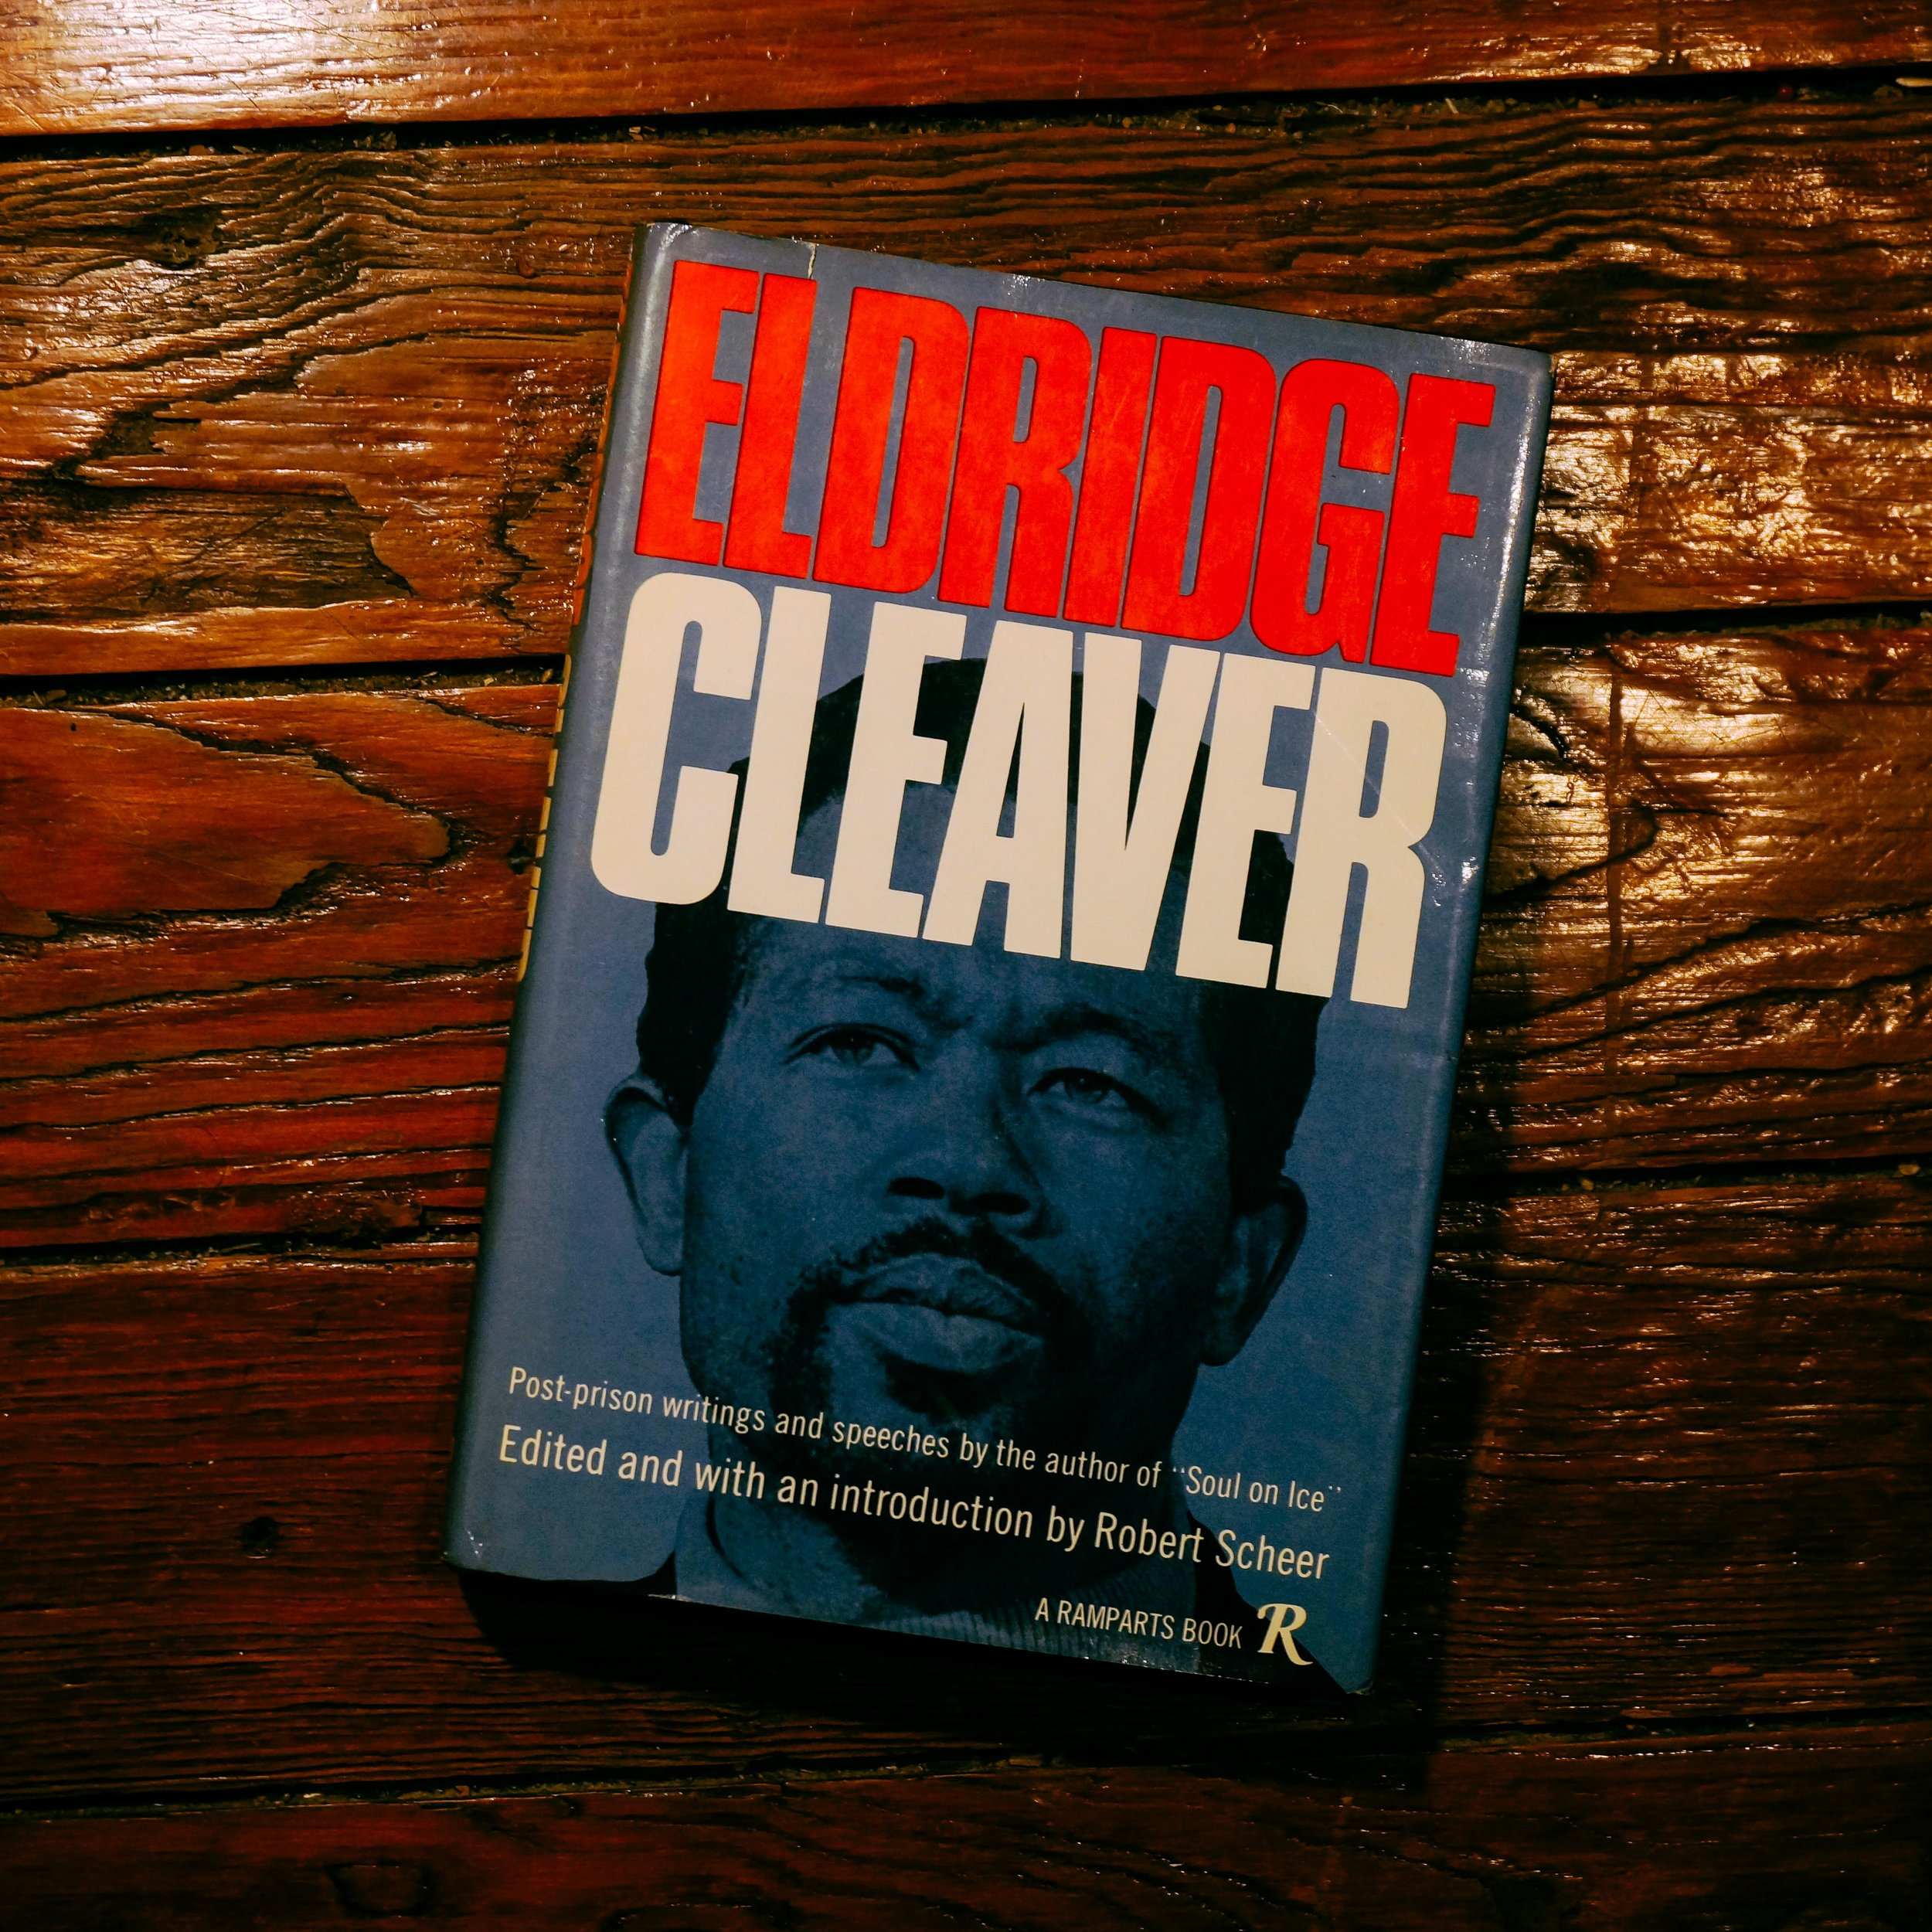 """Eldridge Cleaver quotes from the dust jacket flap:   """"I don't know how to go about waiting until people start practicing what they preach. I don't know how to go about waiting on that. Because all I see is a very critical situation, a chaotic situation, where there's pain, there's suffering, there's death, and I see no justification for waiting until tomorrow to say what you would say tonight. I see no justification for not moving even if i have to move by myself . . .""""   """"The first thing that has to be realized is that it is a reality when people say that there's a 'black colony' and a 'white mother country.' Only if this distinction is borne clearly in mind is it possible to understand that there are two different sets of dynamics now functioning in America.""""   Get it    Here"""